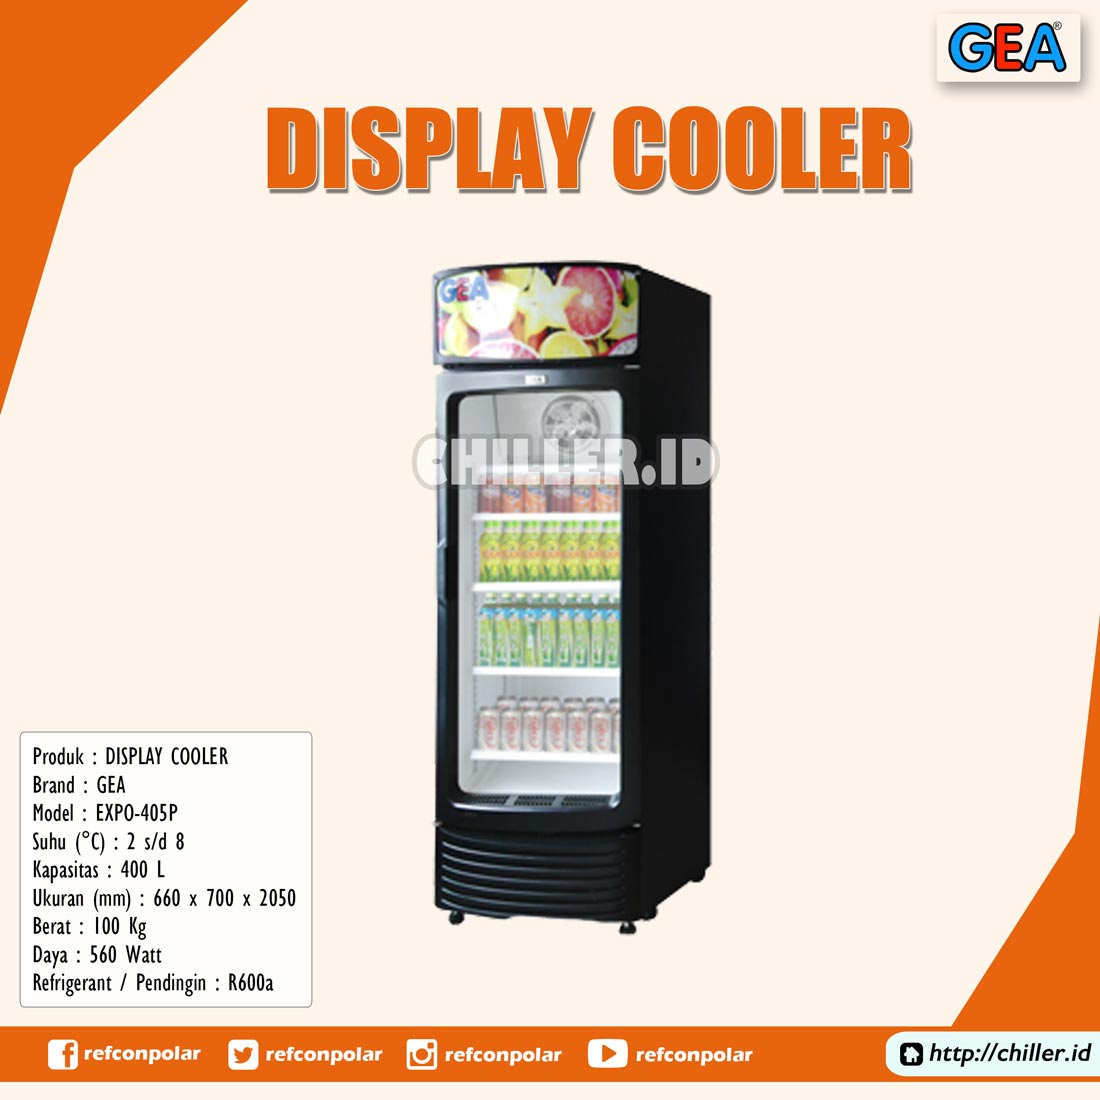 EXPO-405P GEA Display Cooler